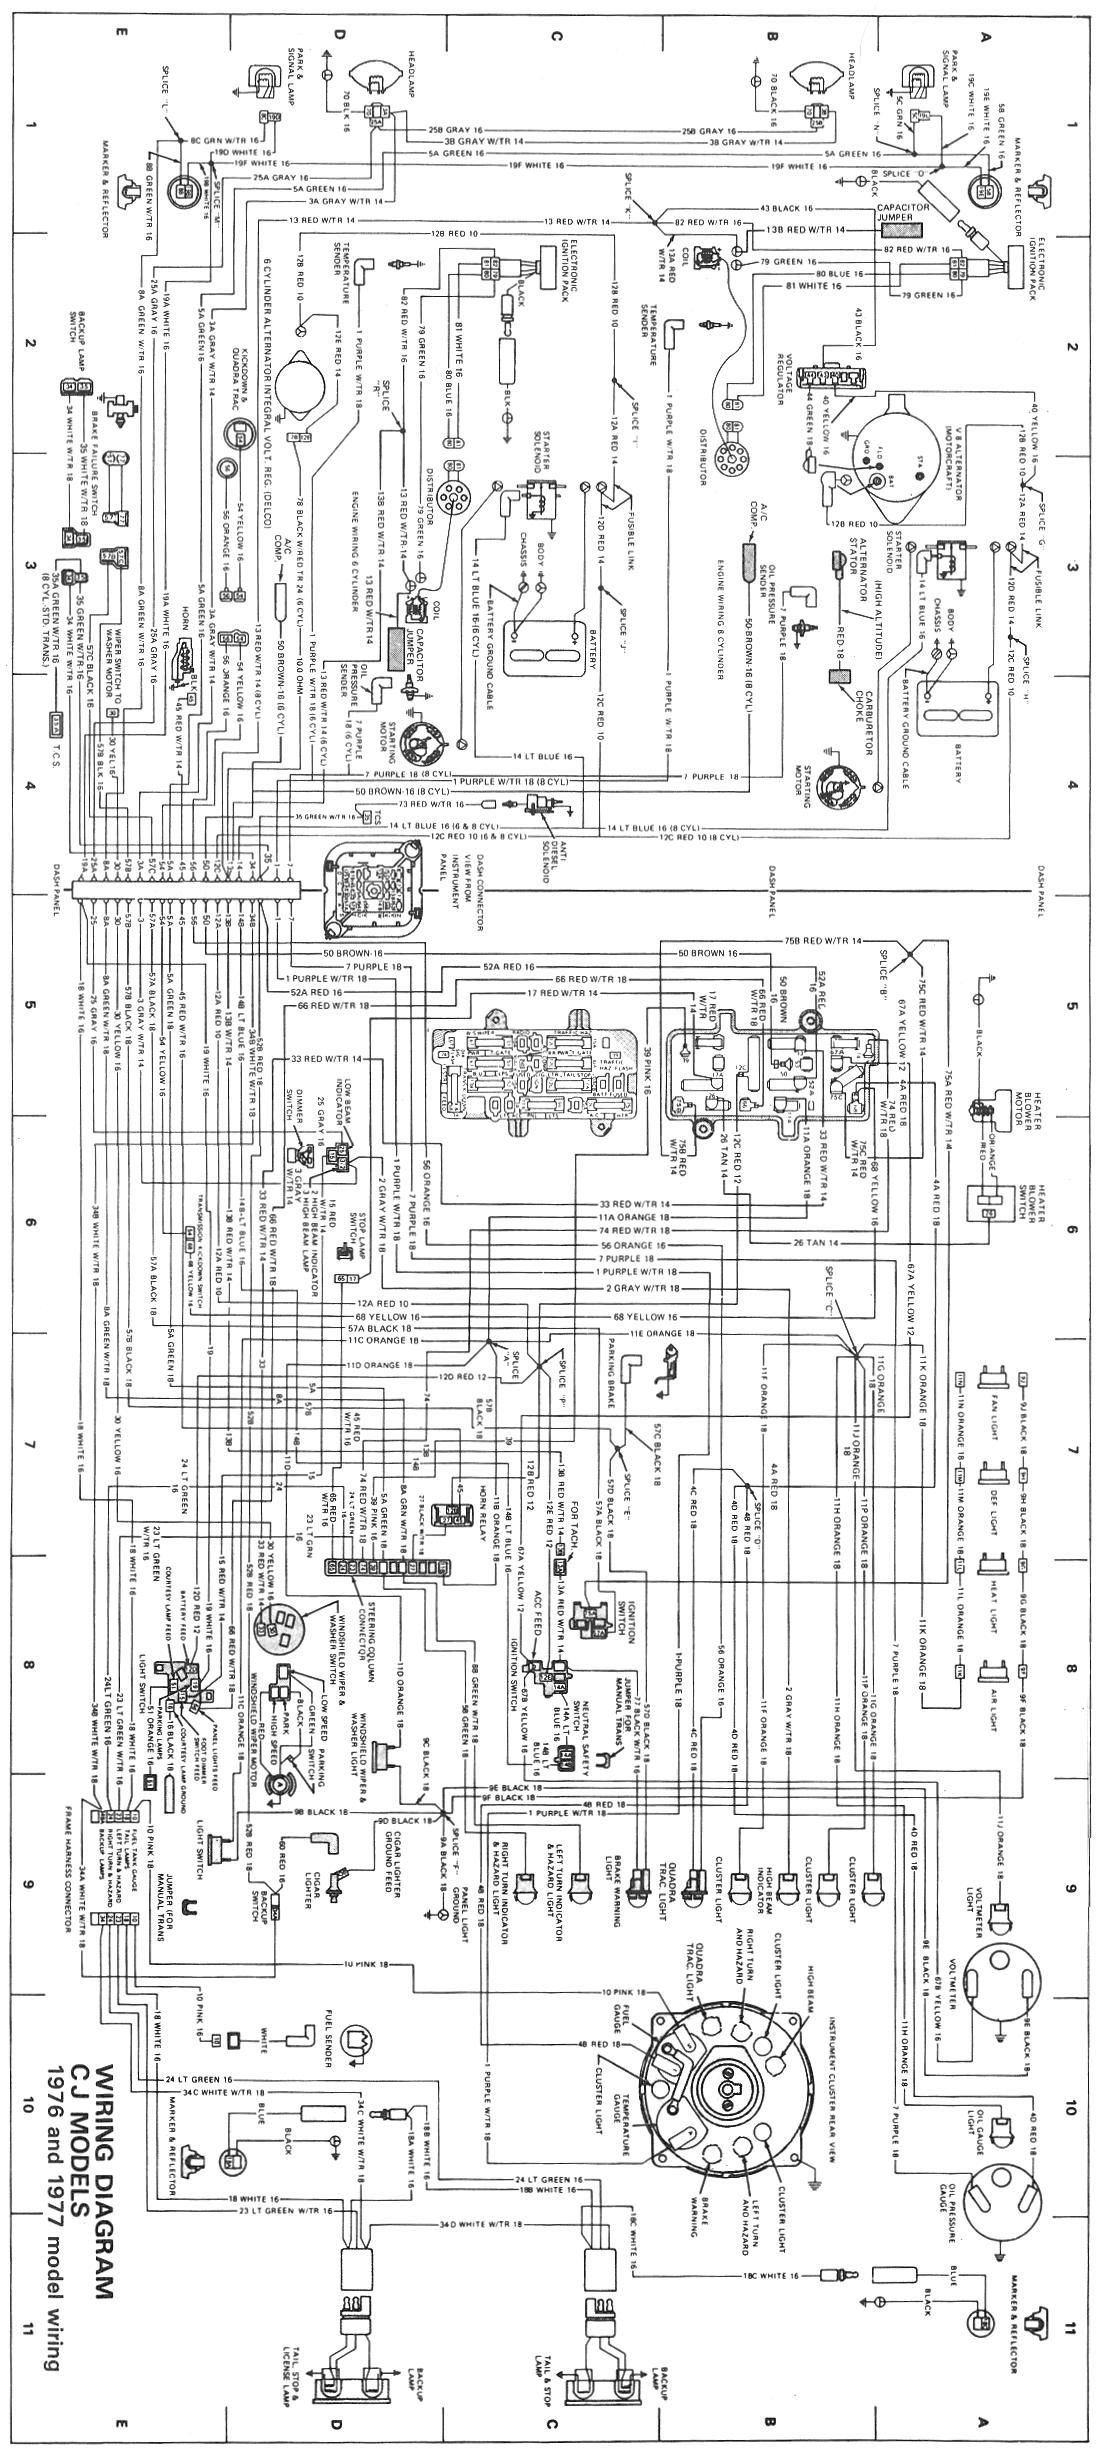 Electrical Diagram 77 International Wiring Schematics Diagrams Images Gallery